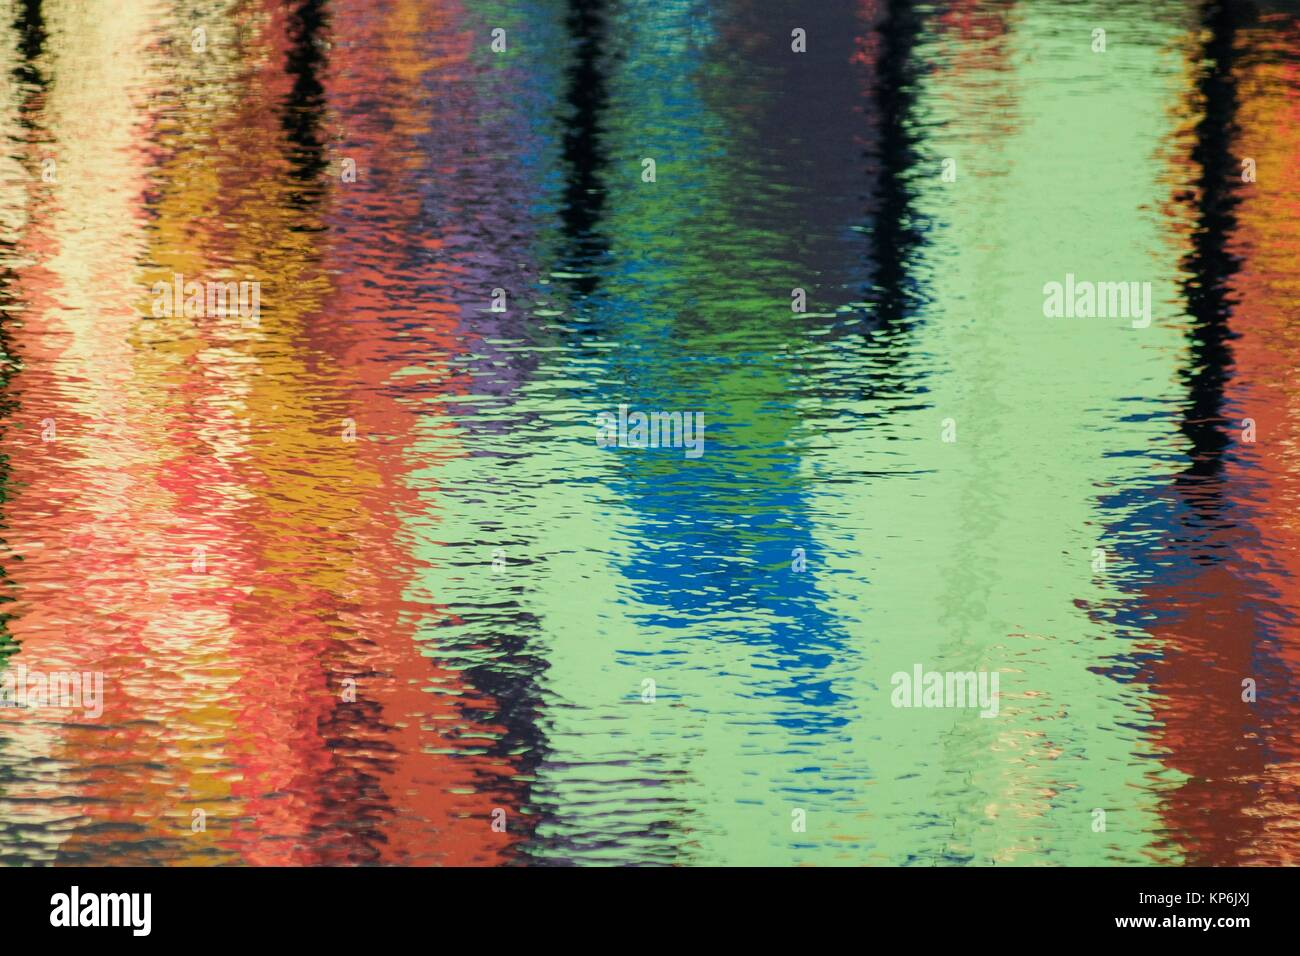 Water canvas for the impressionist painter. - Stock Image